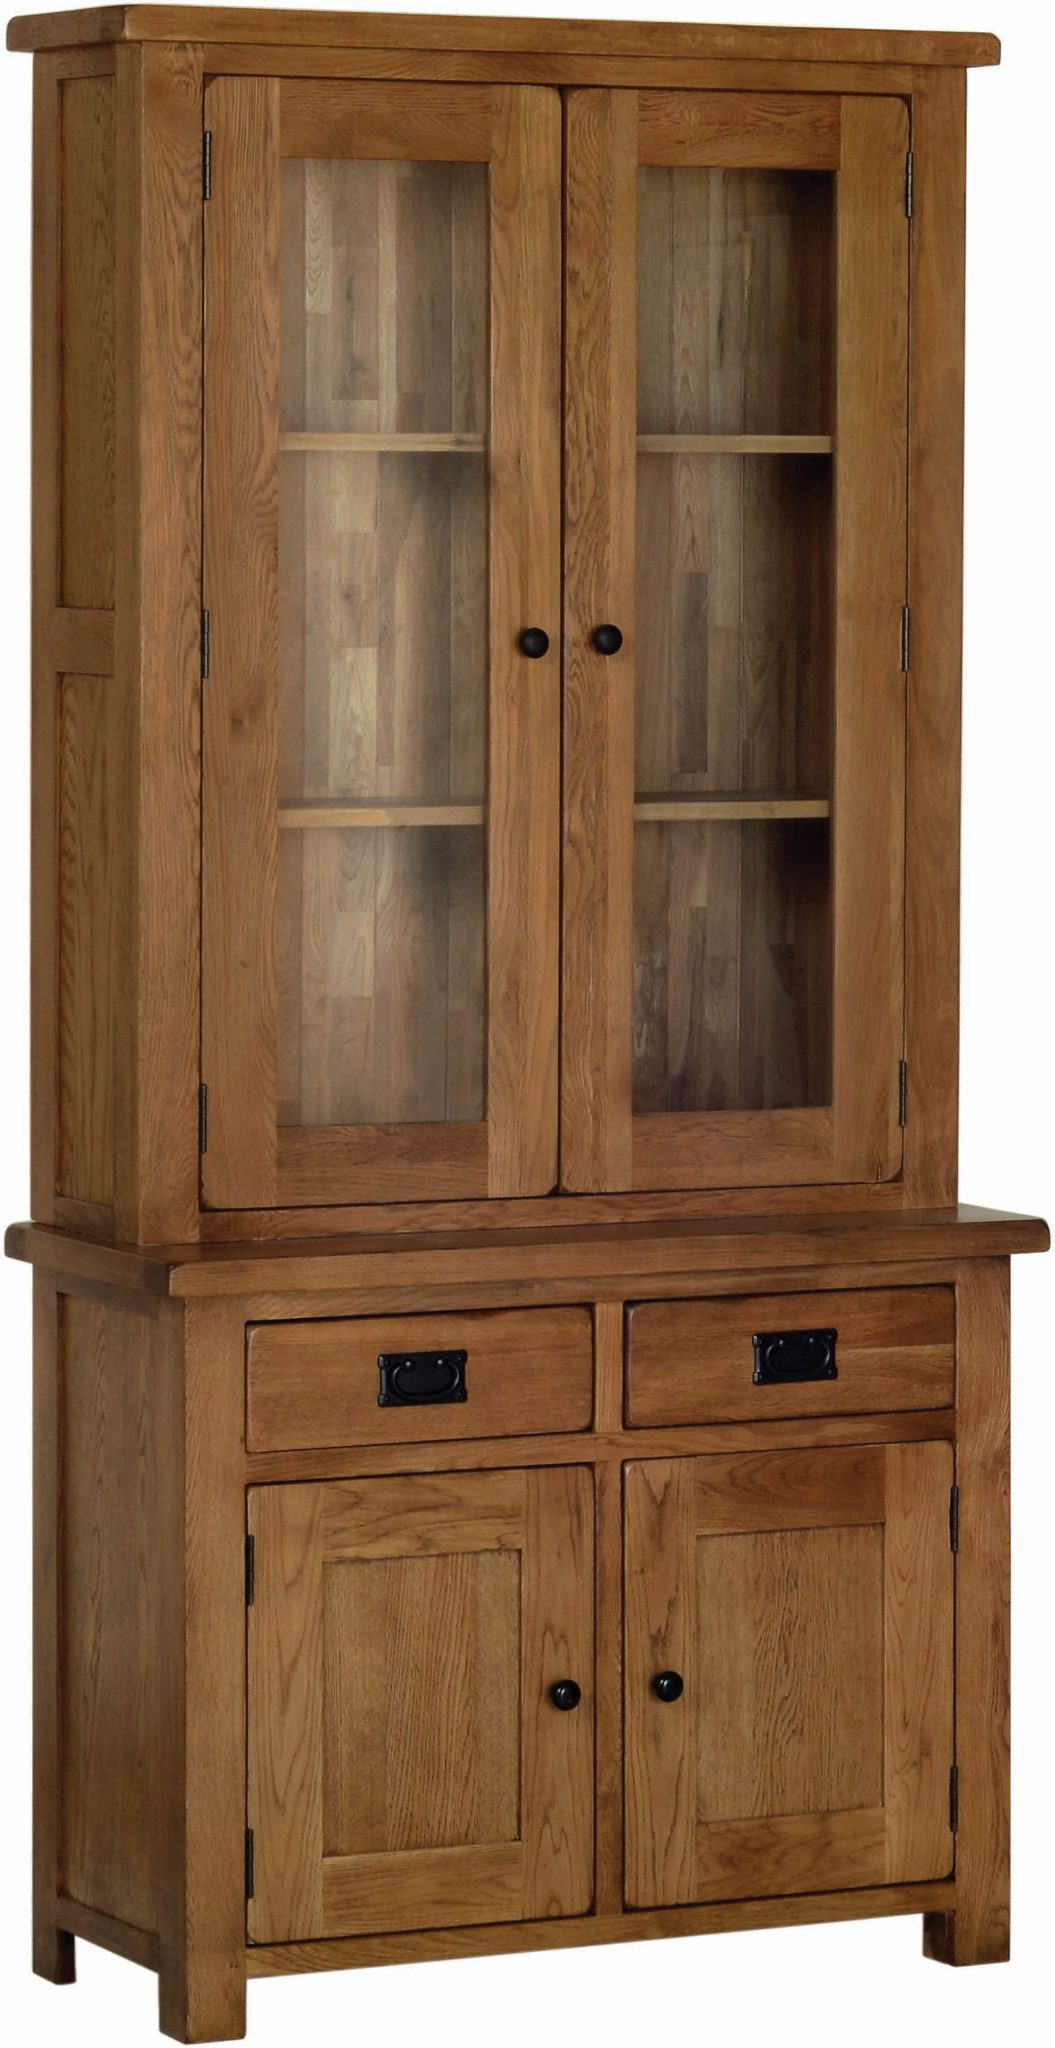 Image showing Sudbury dresser top & Base together. Rustic oak shaker style. glass doors at top and solid drawers and doors at bottom. Black rustic drop down handles and knobs SRD20, SRS20